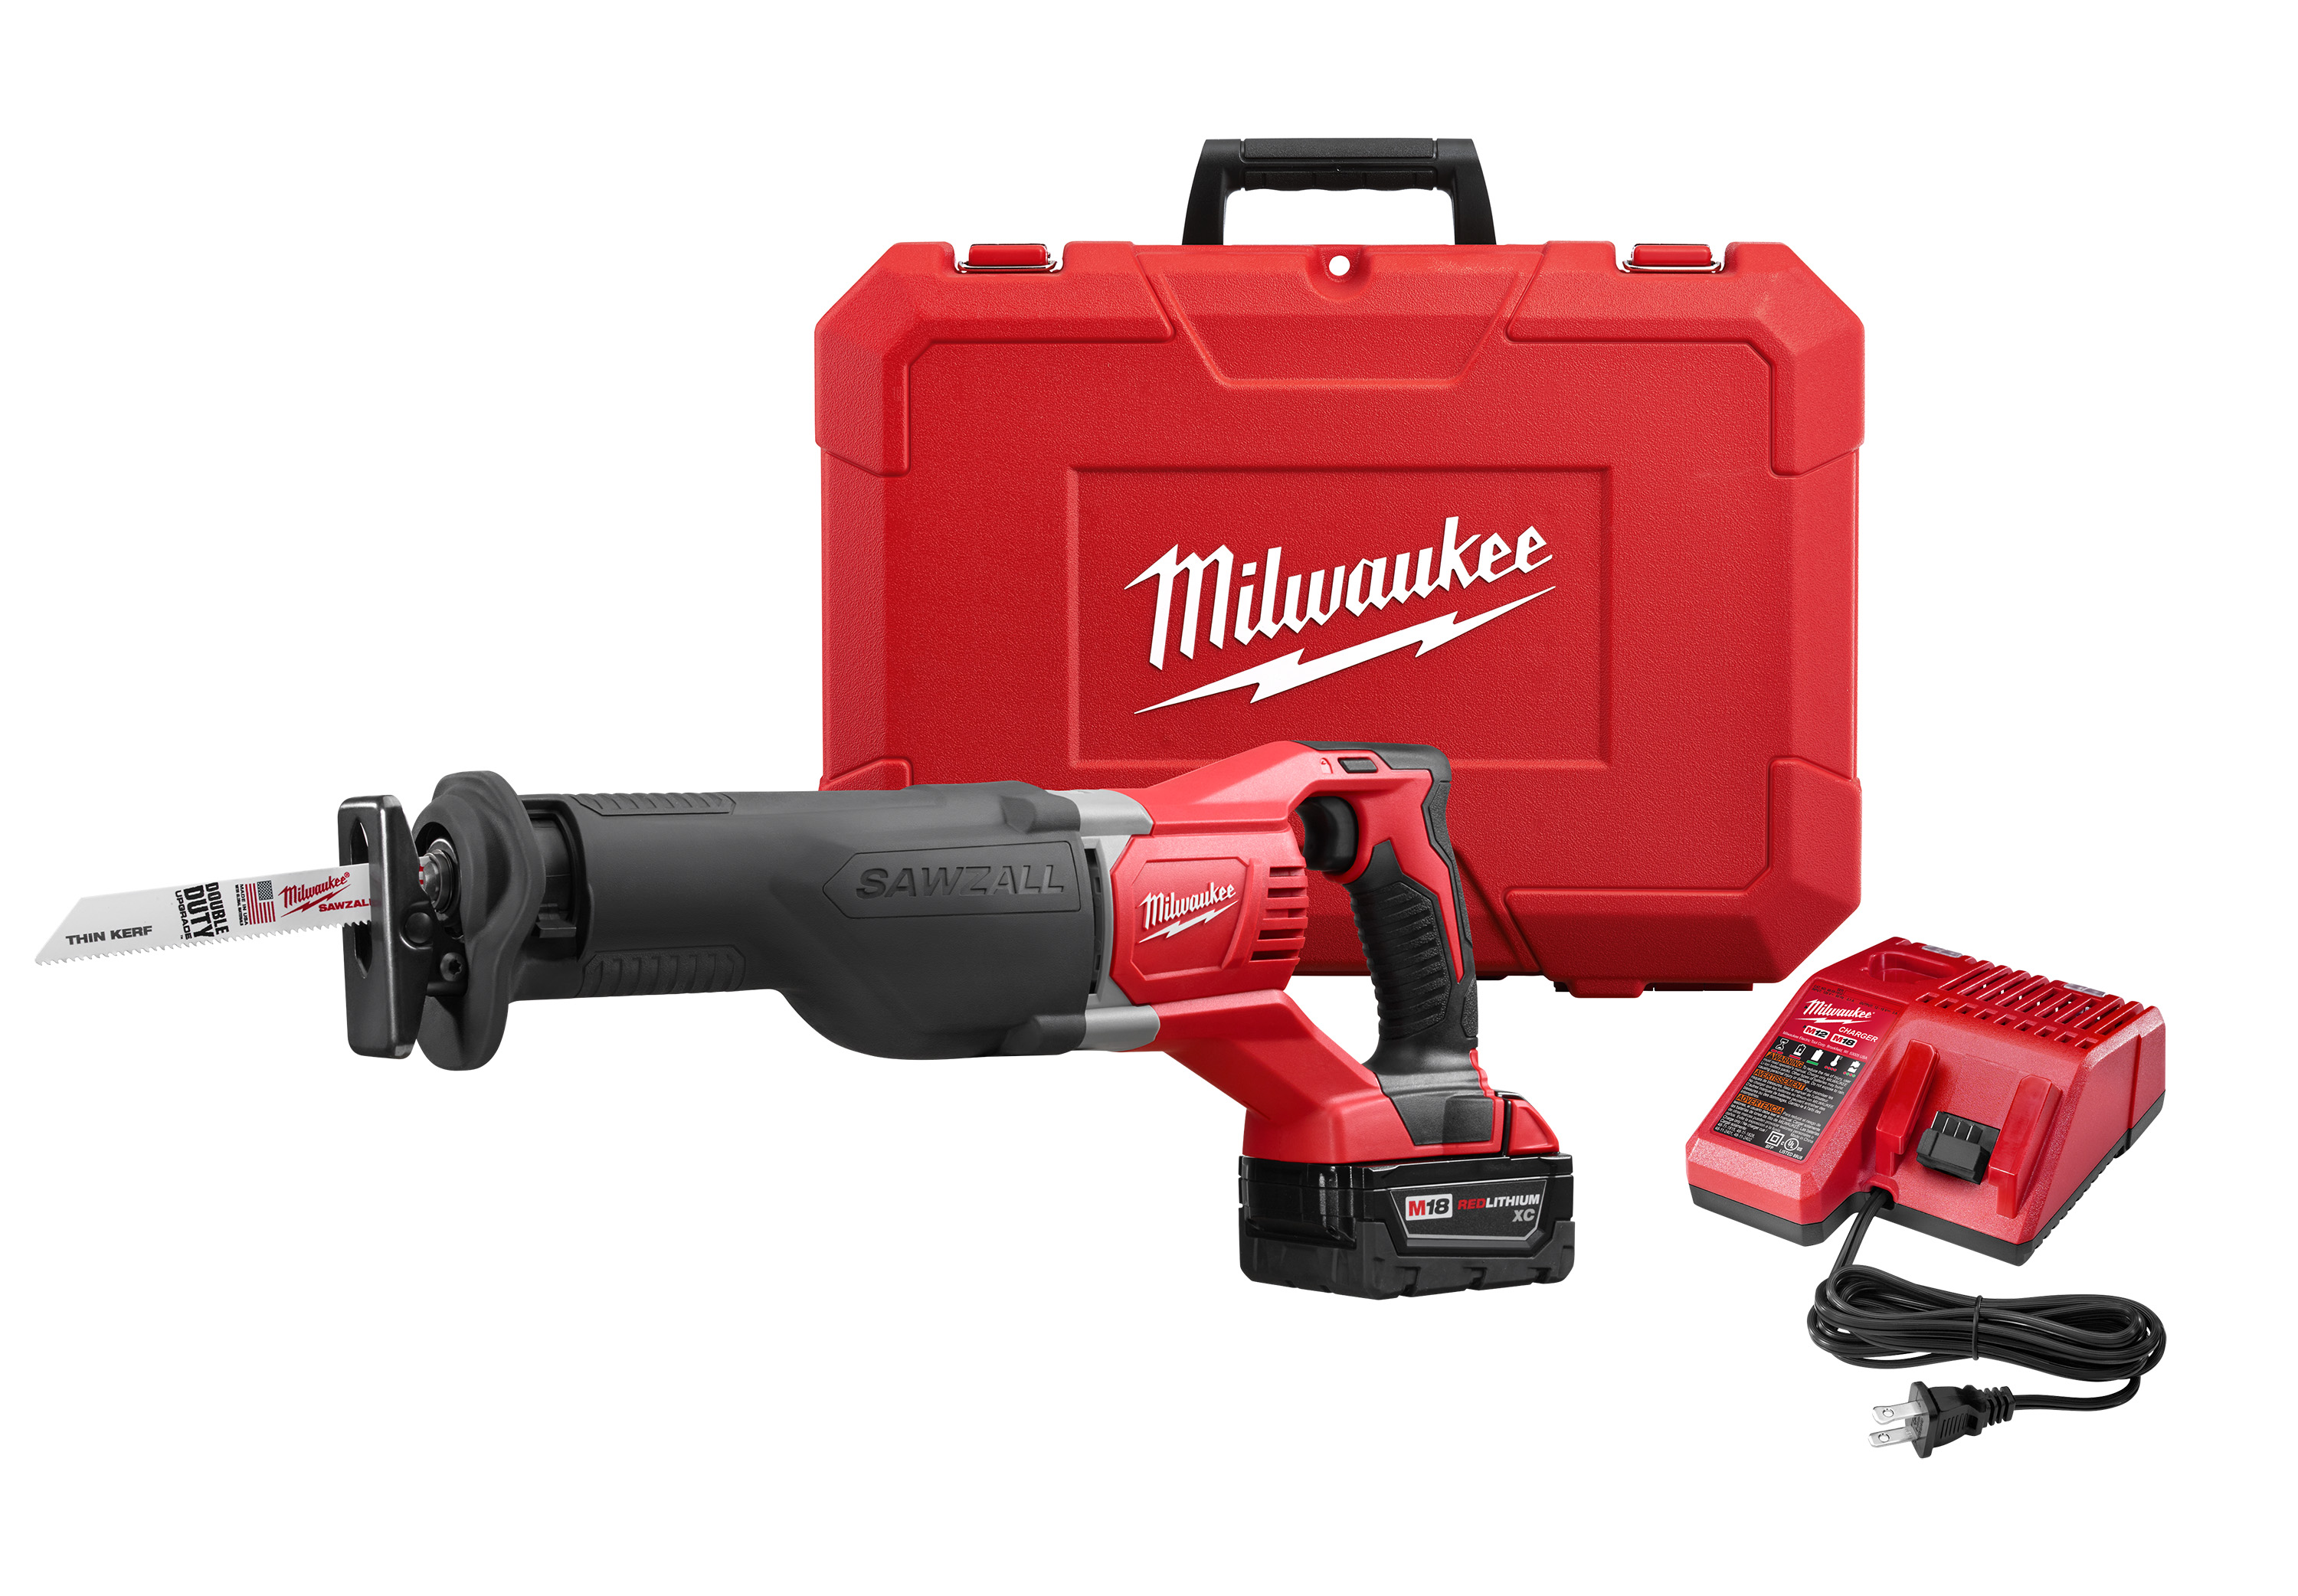 Milwaukee® HACKZALL™ 2420-22 M12™ Fixed Shoe Cordless Reciprocating Saw Kit, 1/2 in L Stroke, 0 to 3000 spm, Straight Cut, 12 VDC, 11 in OAL